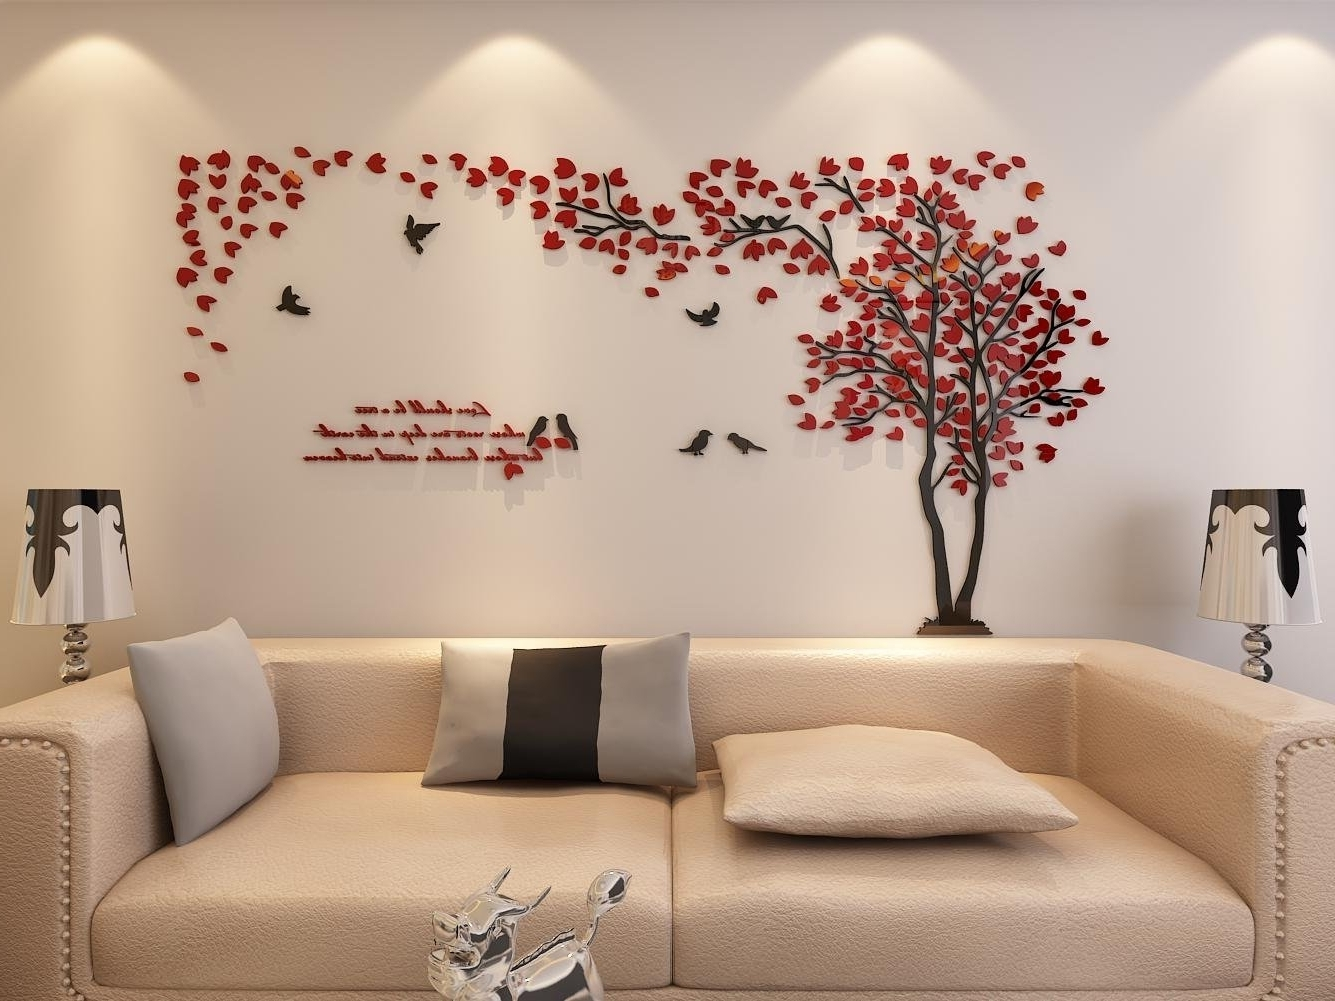 Amazon: 3D Couple Tree Wall Murals For Living Room Bedroom With Regard To Trendy Amazon Wall Accents (Gallery 7 of 15)